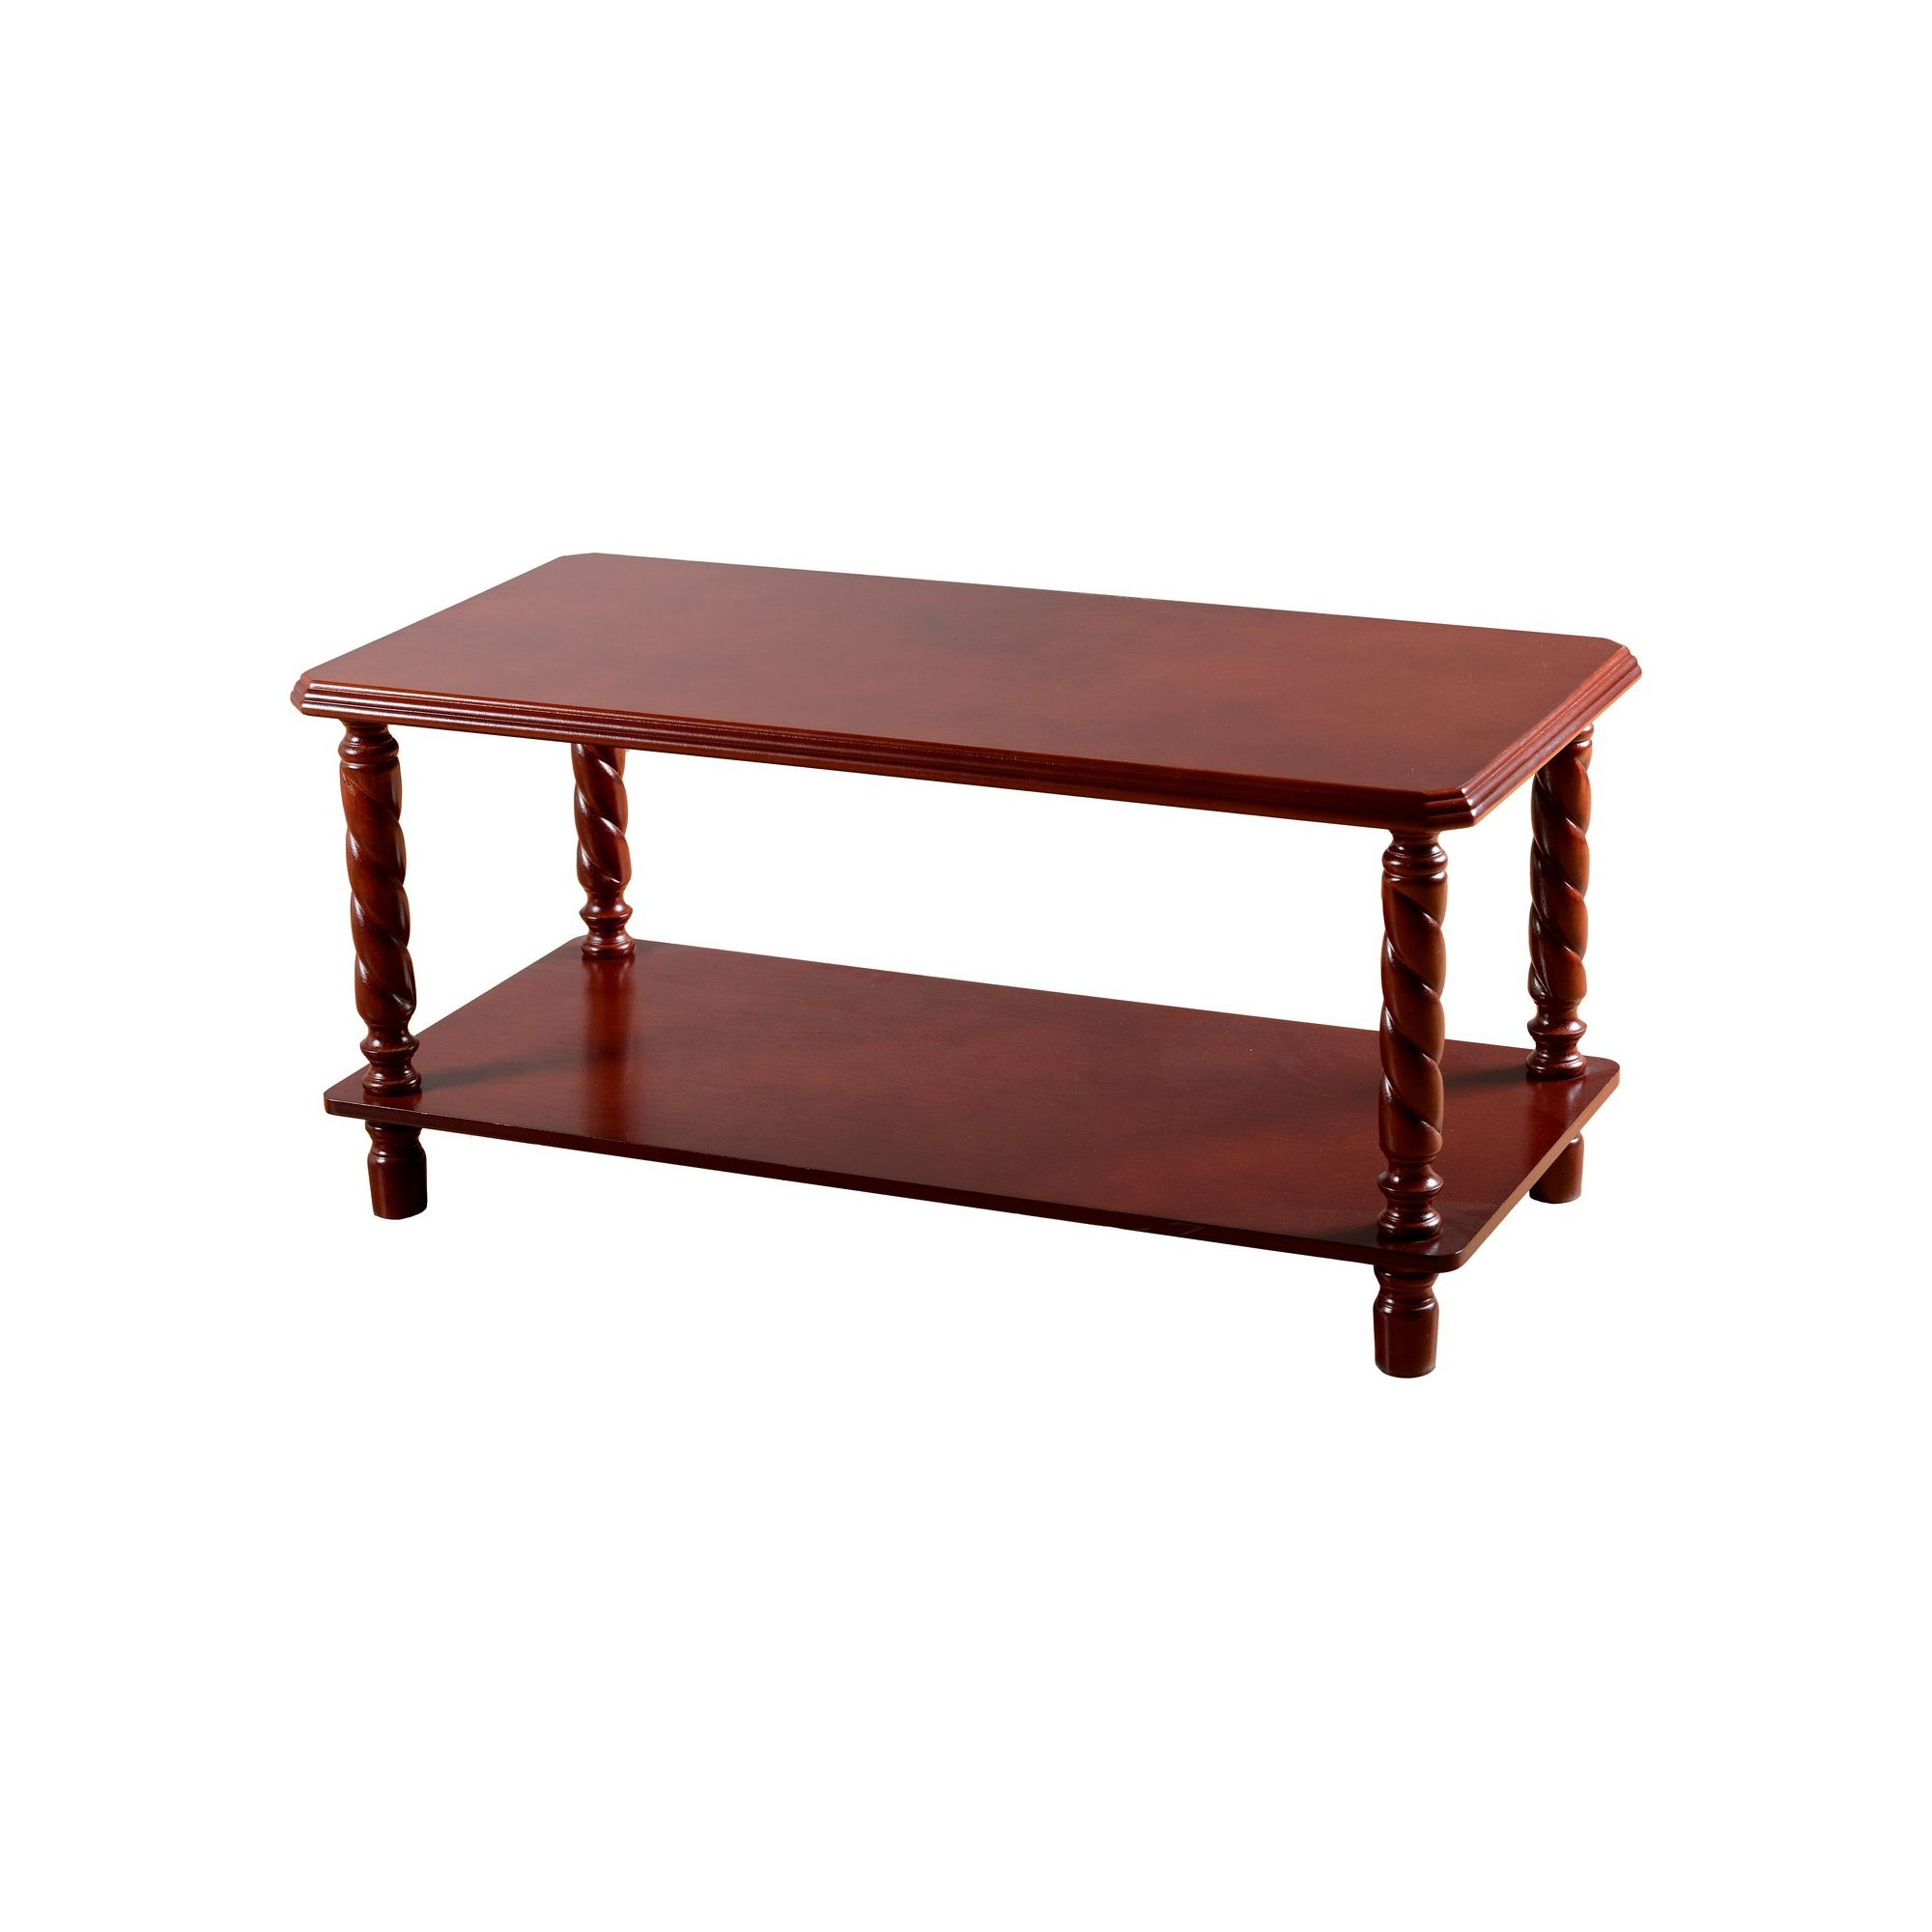 home and garden furniture home essence jersey coffee table in mahogany finish special offers